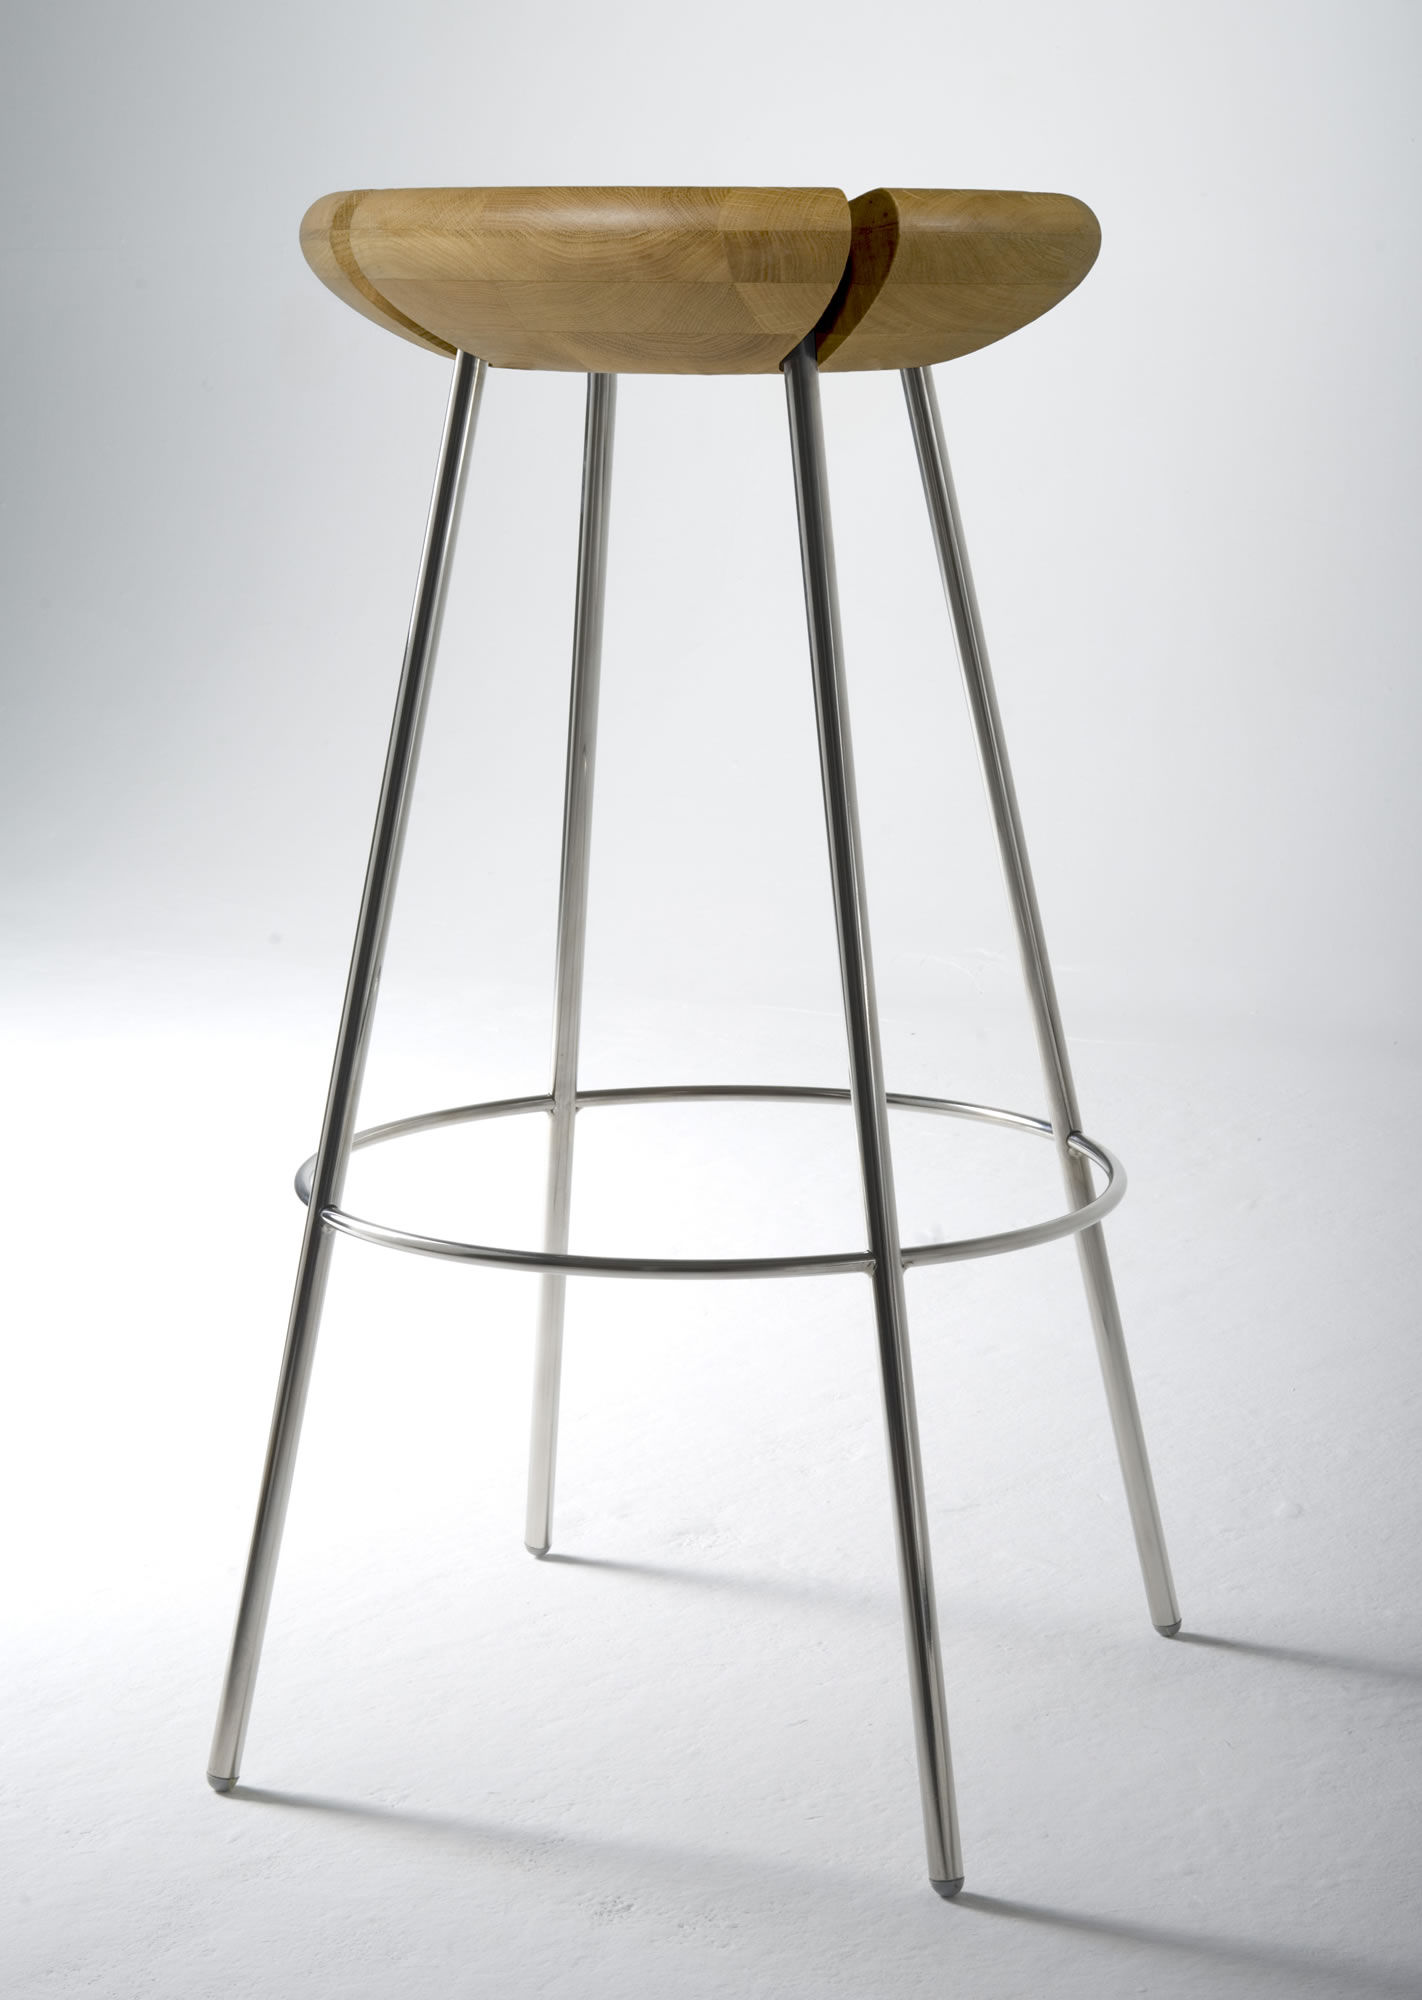 Tribo Bar stool H 76 cm Wood amp metal legs solid oak  : 4c18591d 2776 447a b406 093acbcd2a93 from www.madeindesign.co.uk size 1422 x 2000 jpeg 147kB